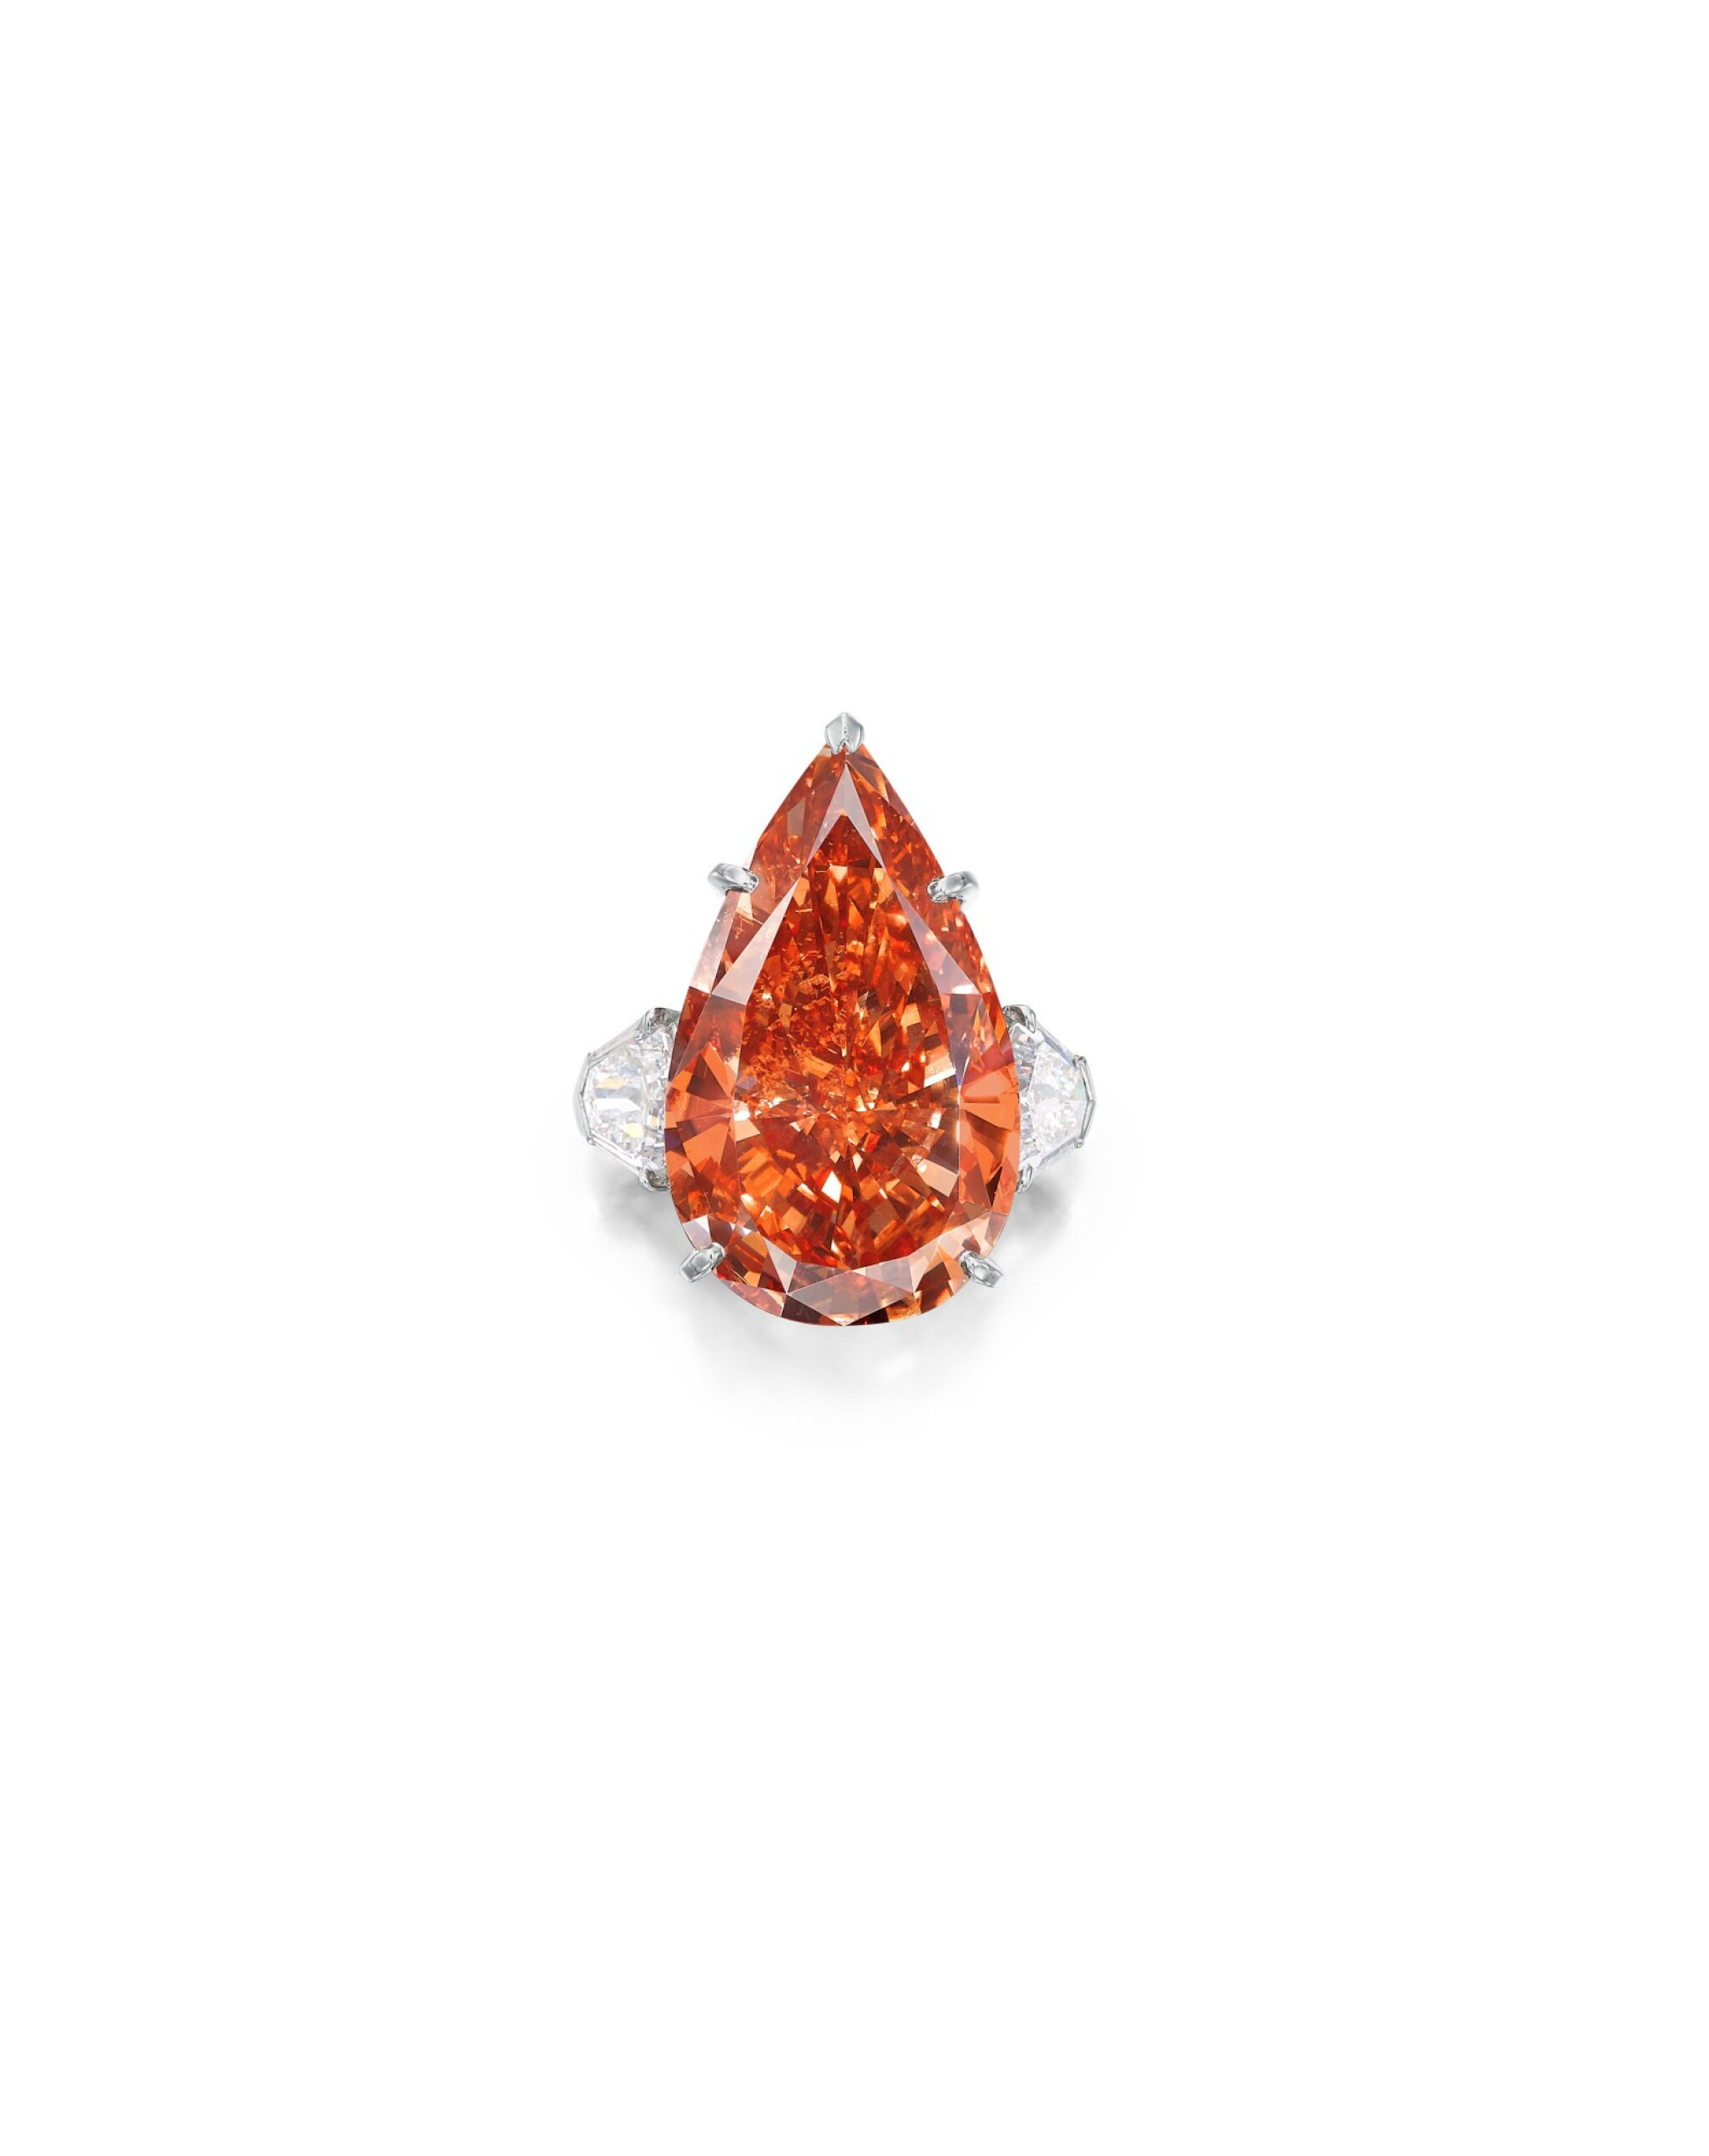 View full screen - View 1 of Lot 1743. Cartier | A Highly Important and Exceptional Fancy Deep Pinkish Orange Diamond and Diamond Ring | 卡地亞 | 23.48克拉 深彩粉紅橙色鑽石 配 鑽石 戒指.